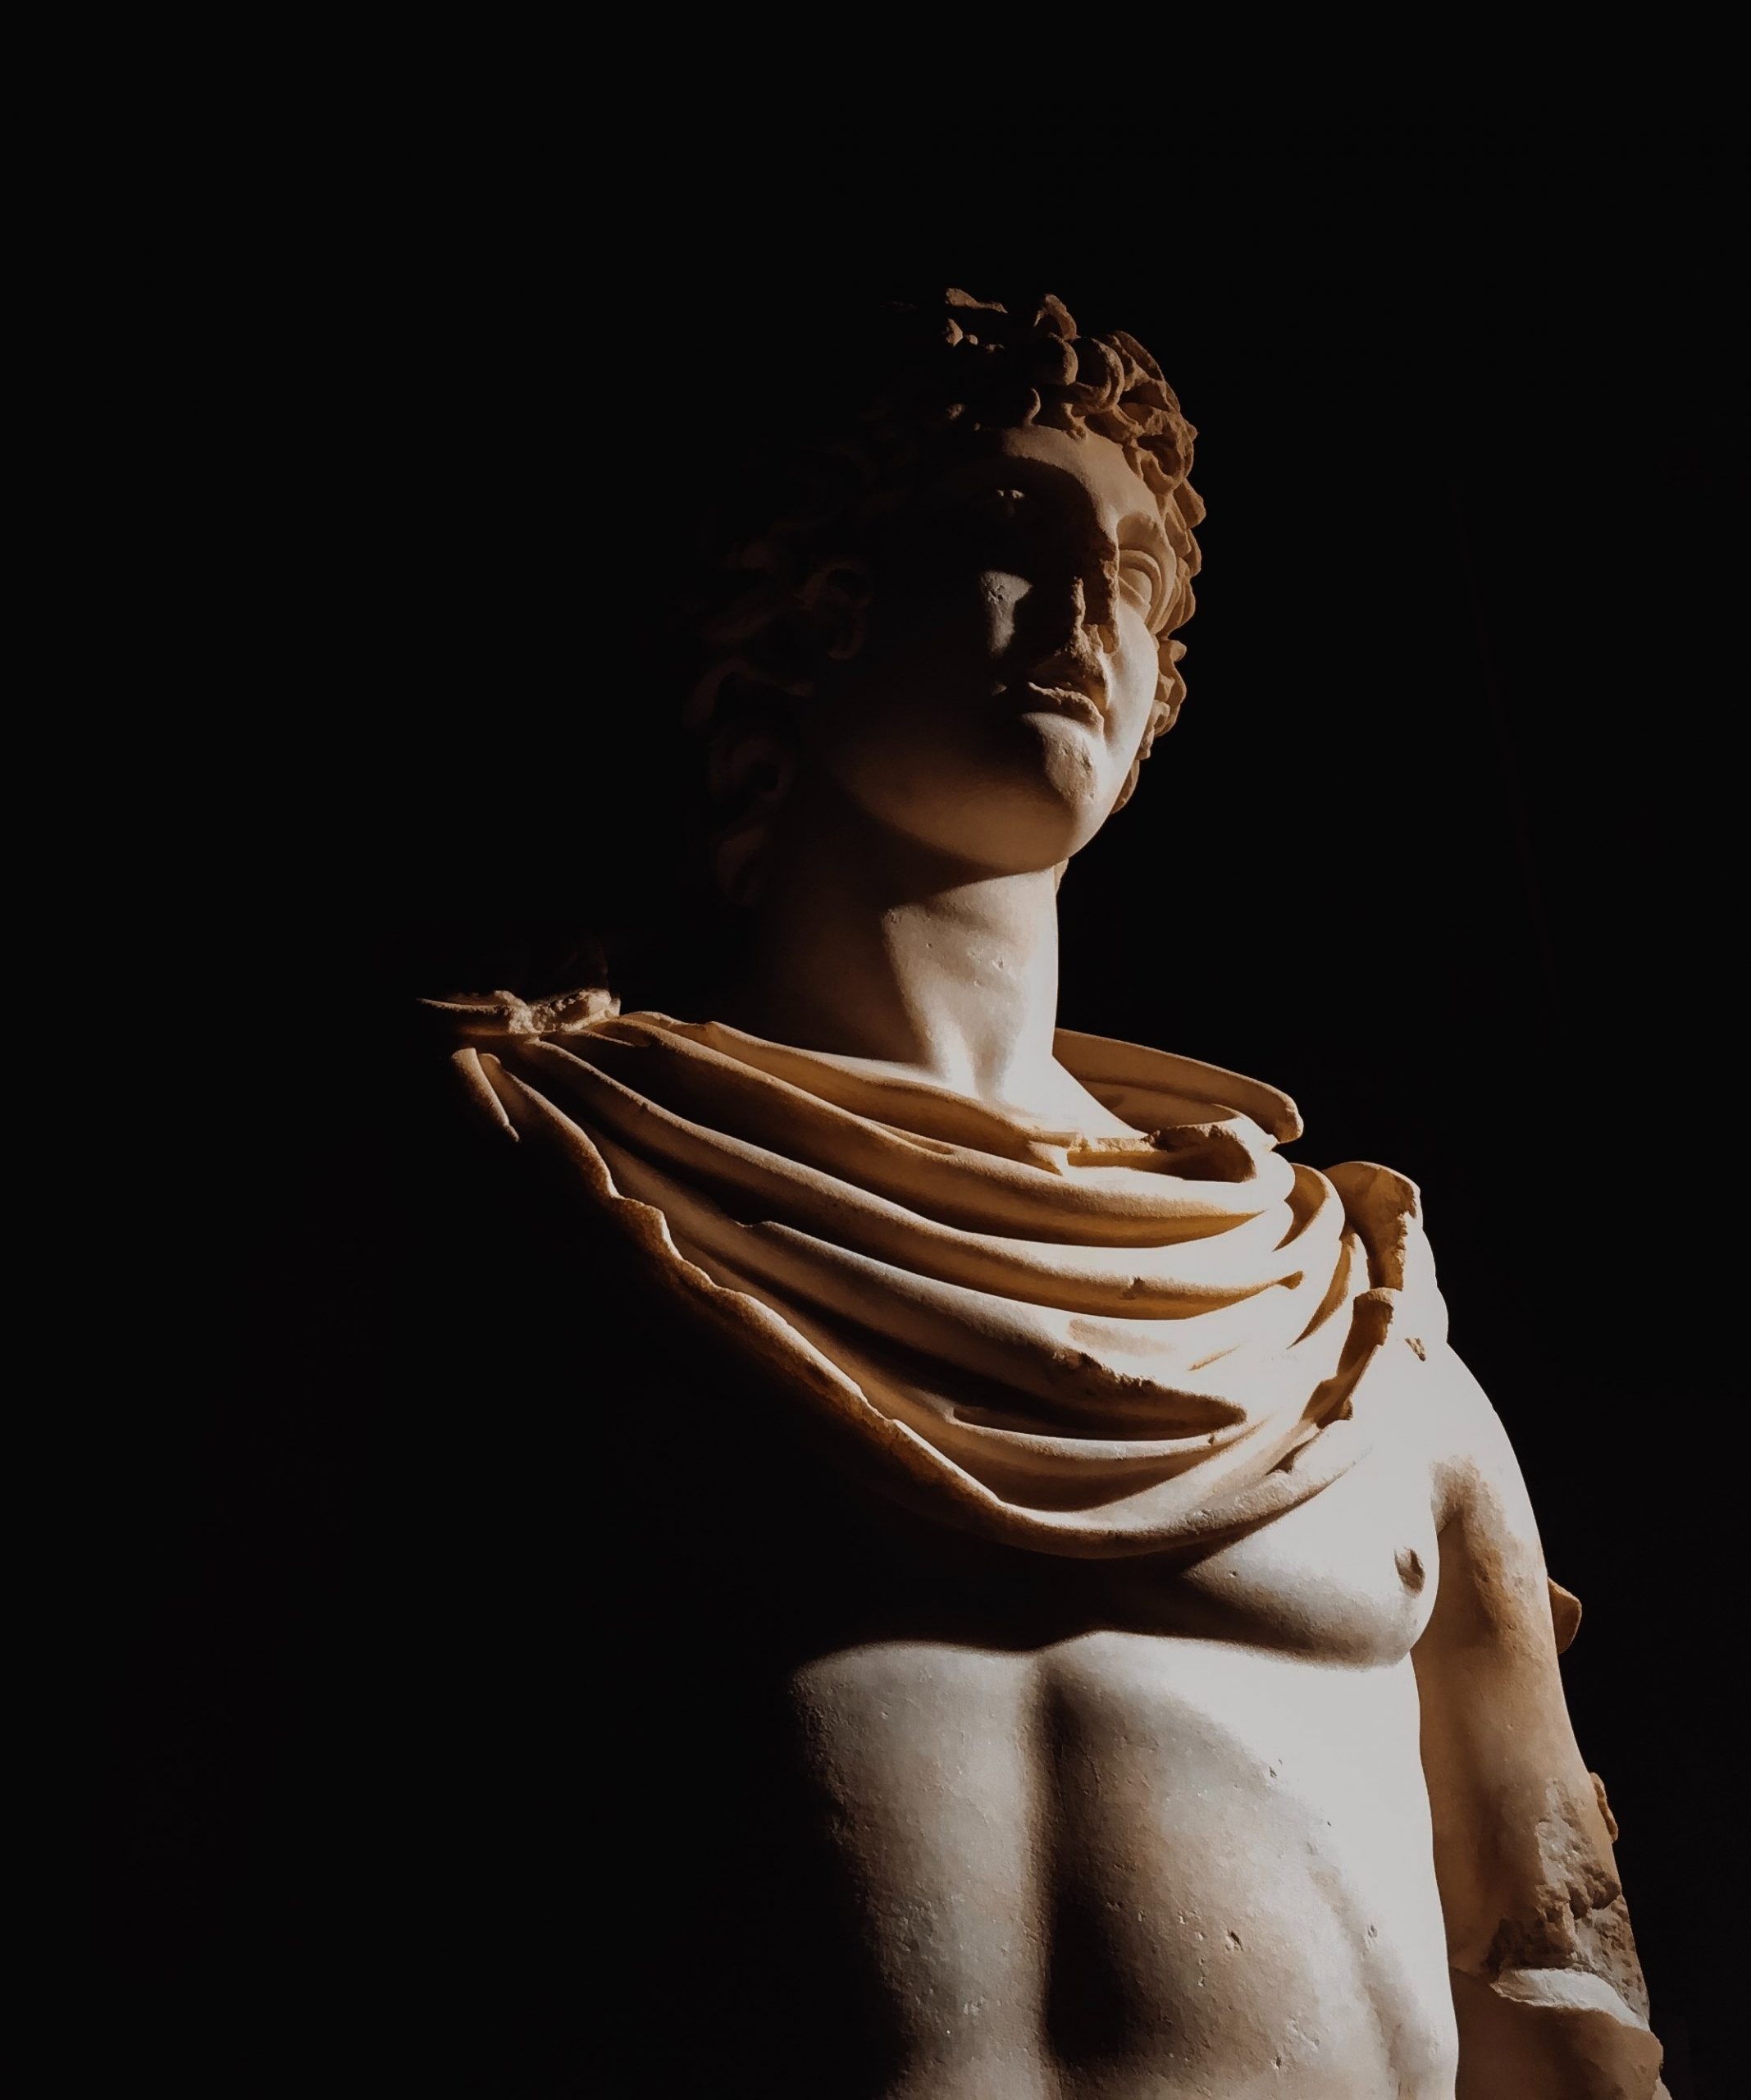 classical-sculpture-angry-ventures-blog-principles